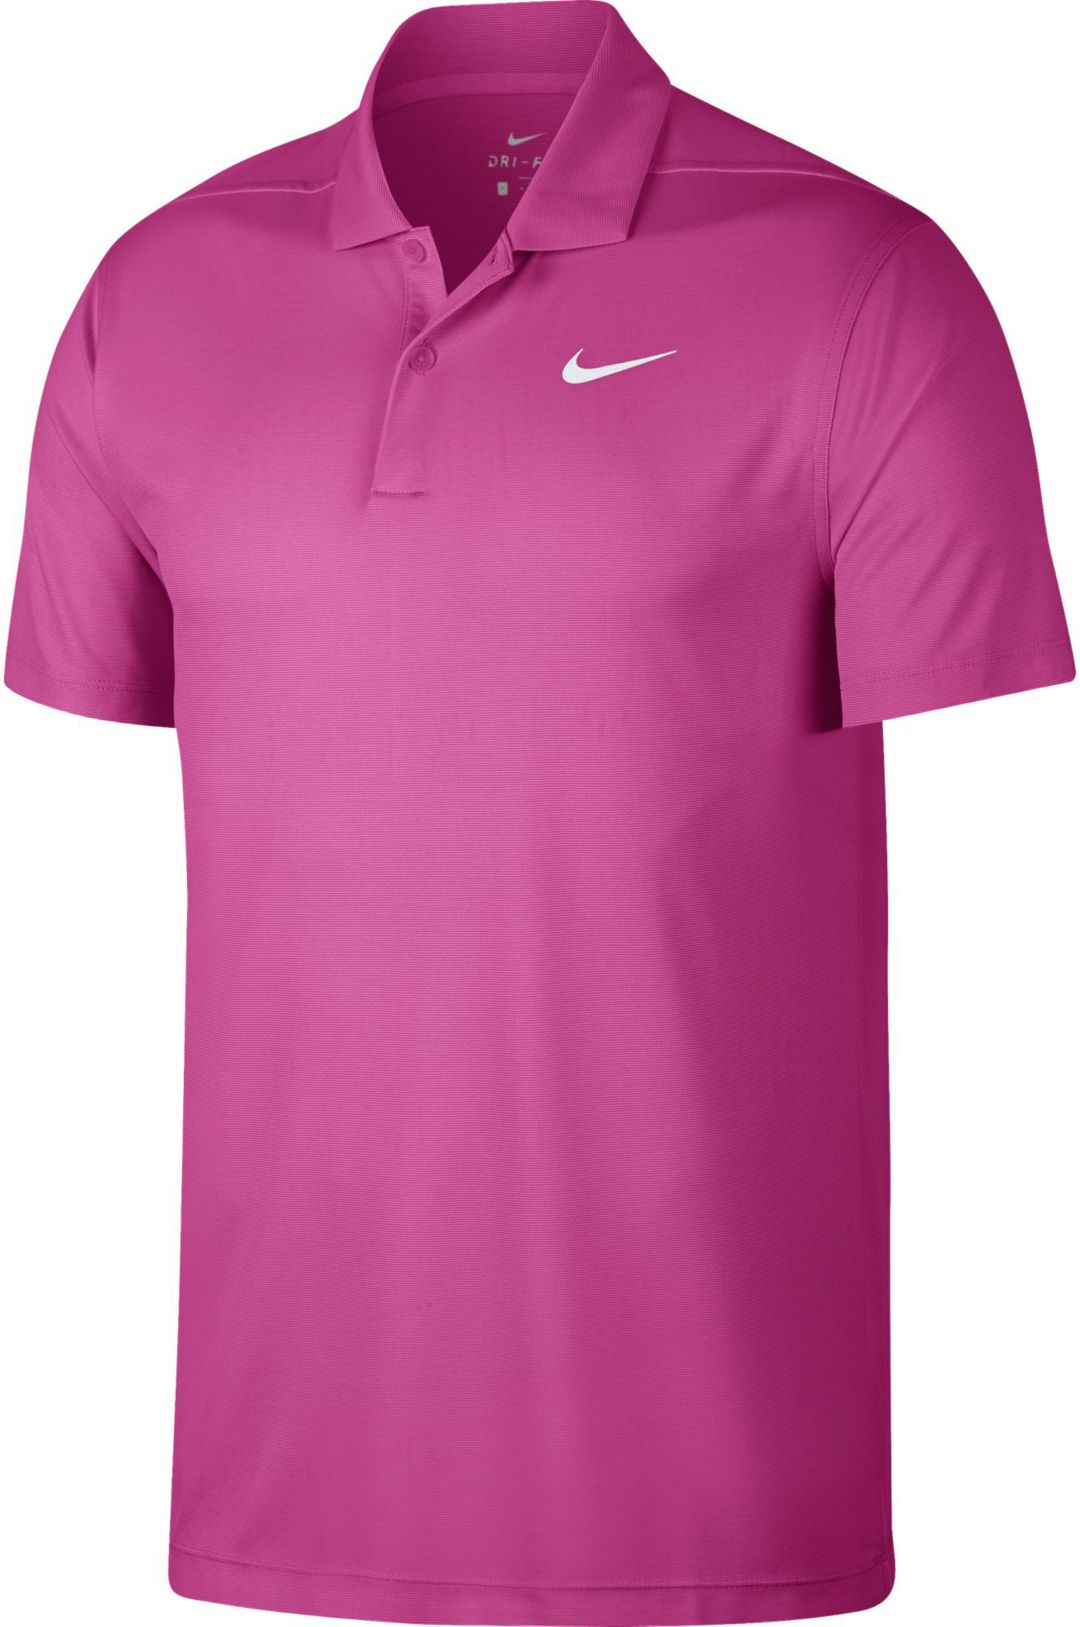 a7632c6ff Nike Men's Victory Texture Golf Polo. noImageFound. Previous